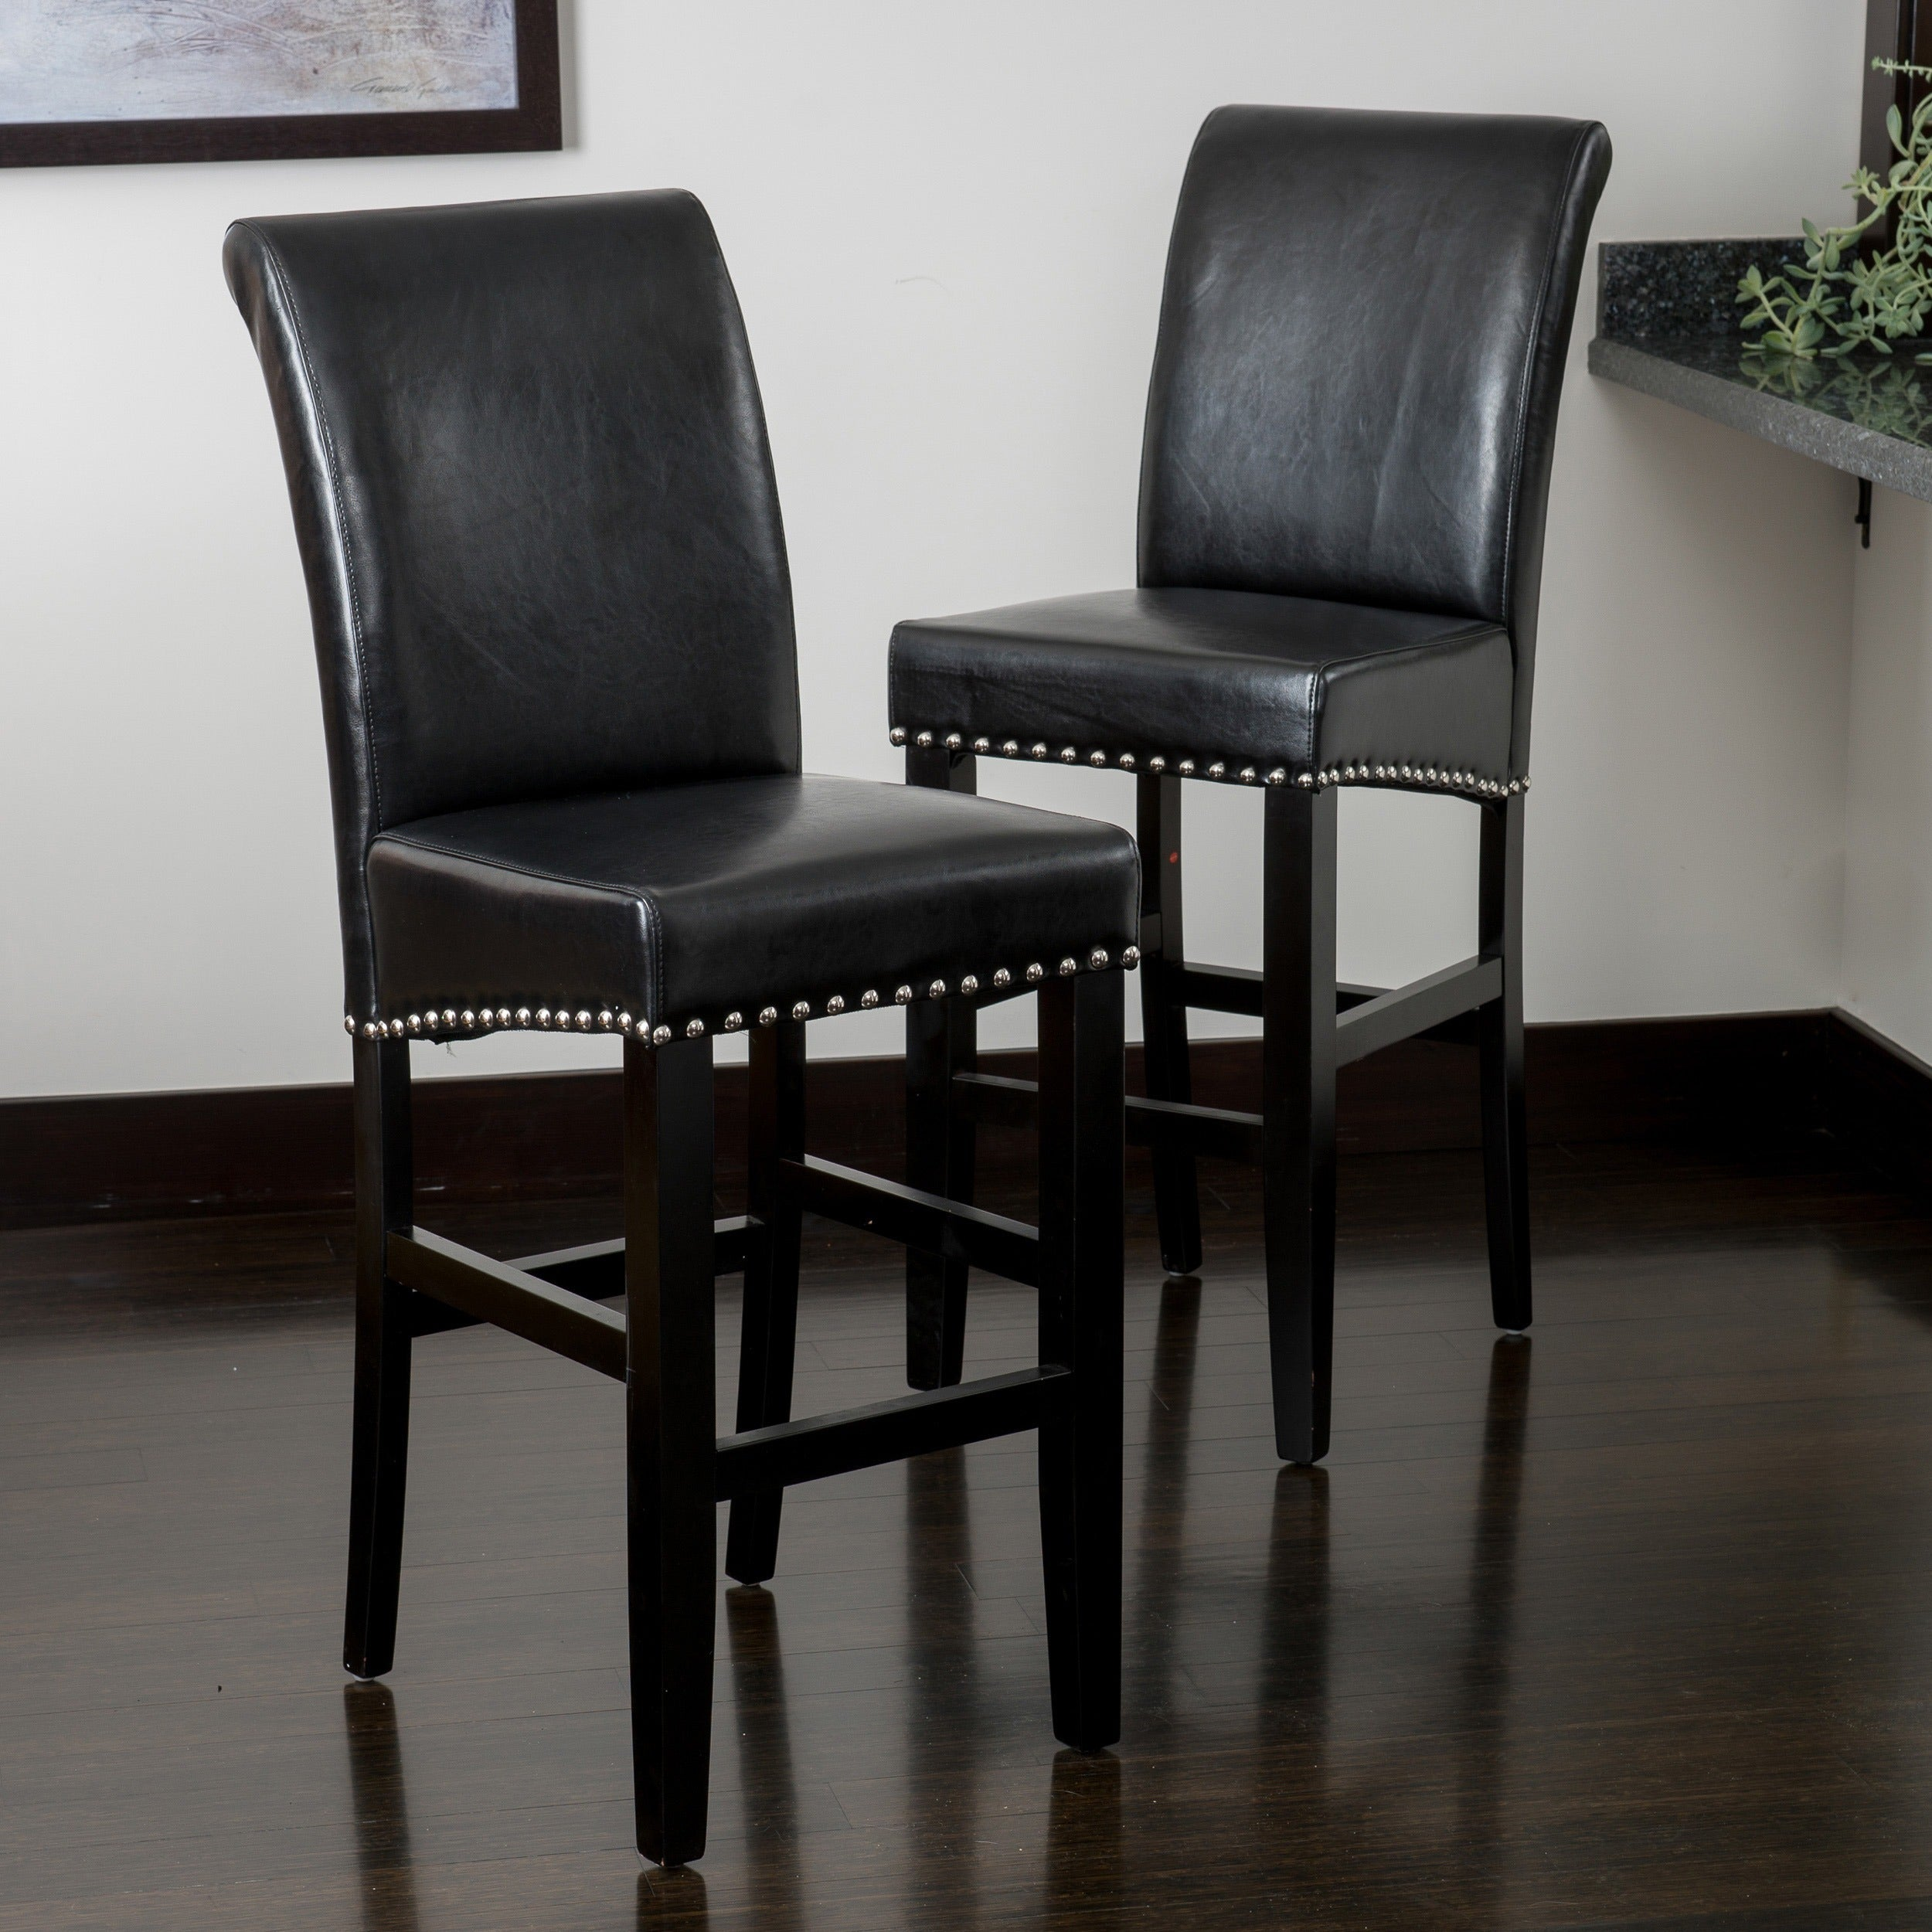 Lisette 47 inch leather bar stool set of 2 by christopher knight home